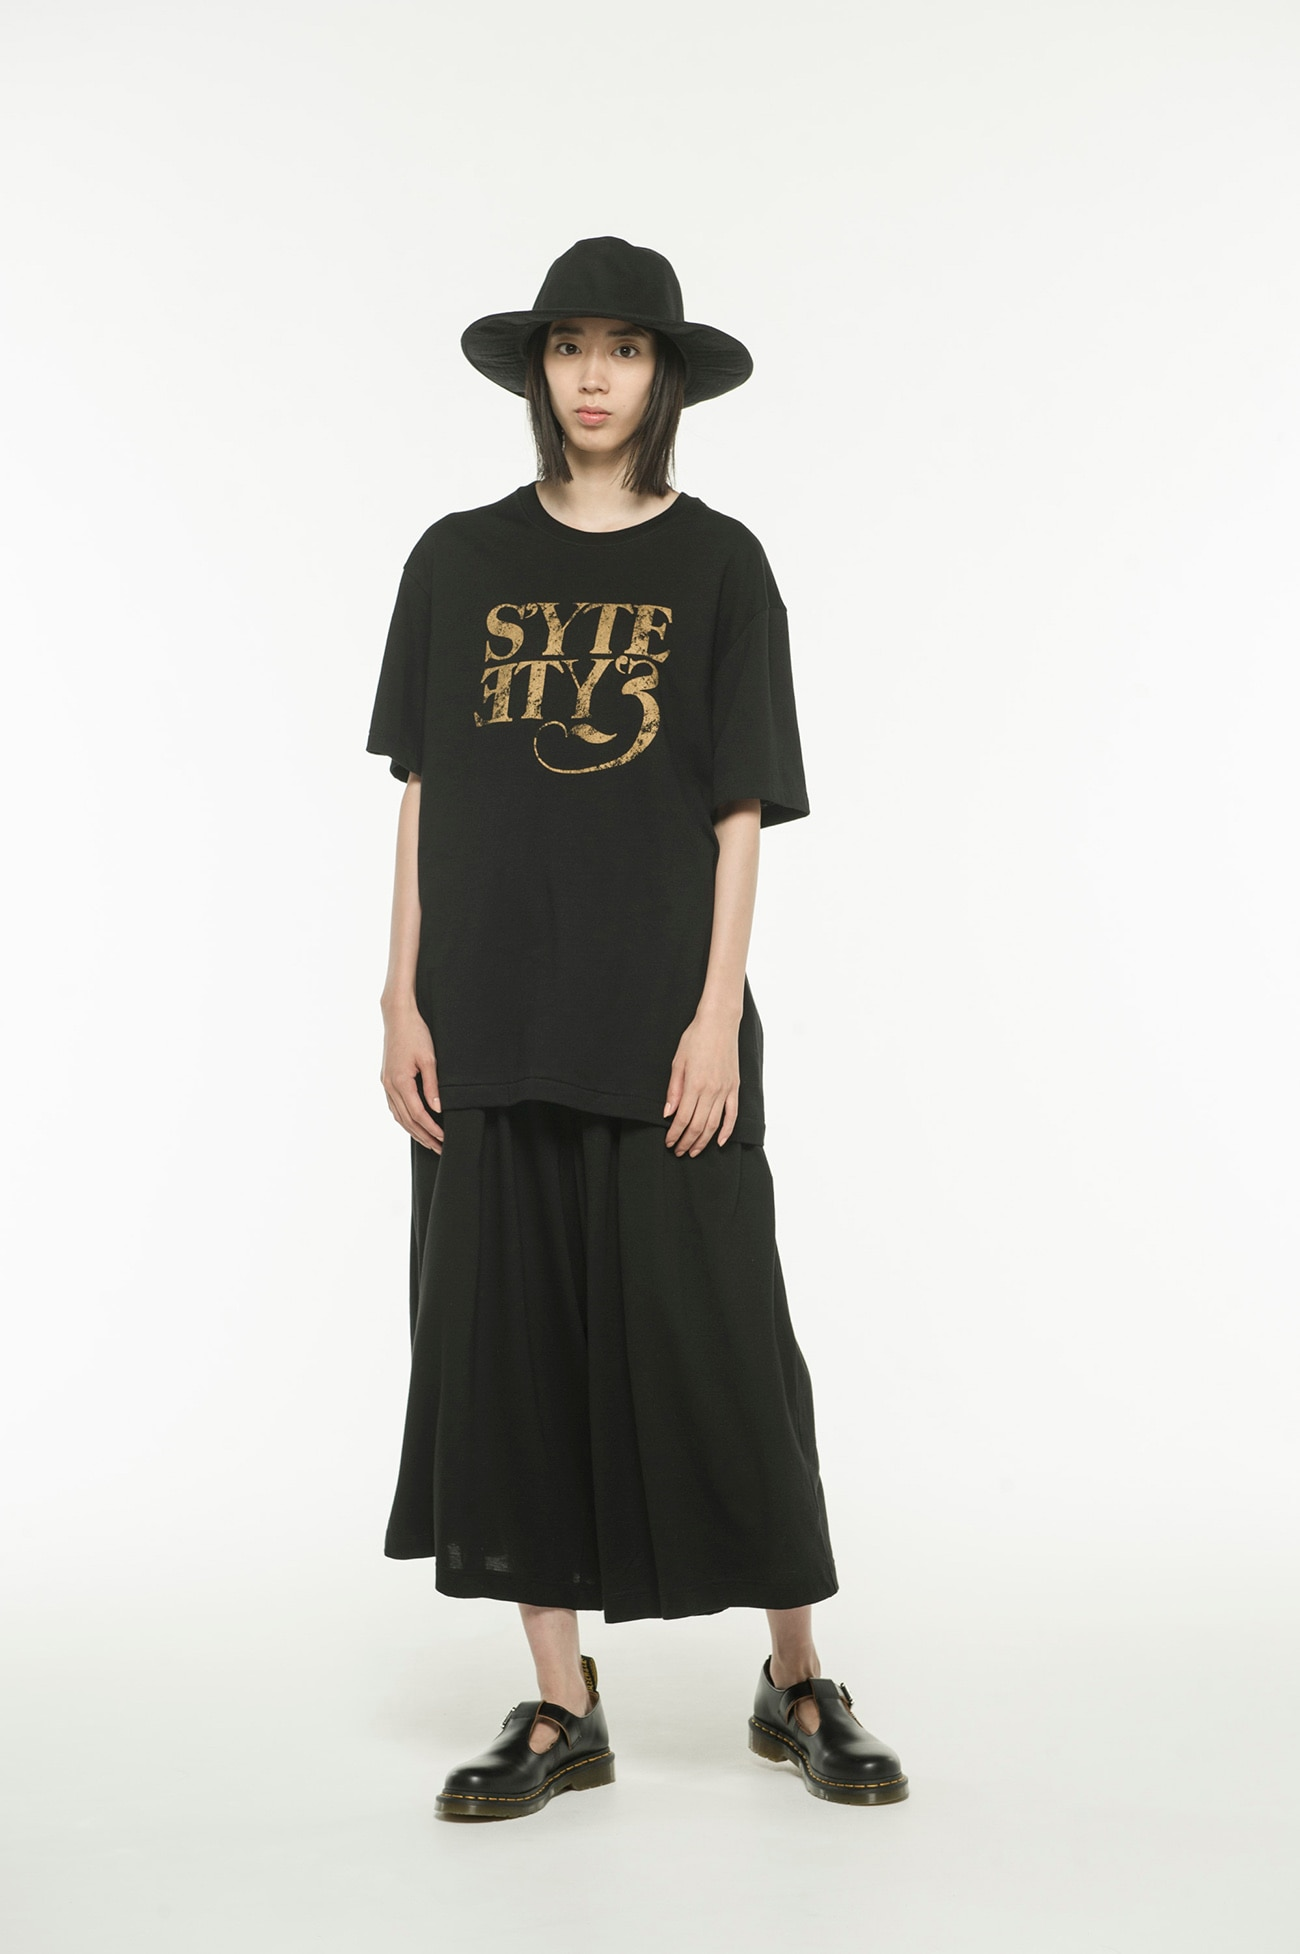 20 / CottonJersey THE S'YTE WALTZ T-Shirt